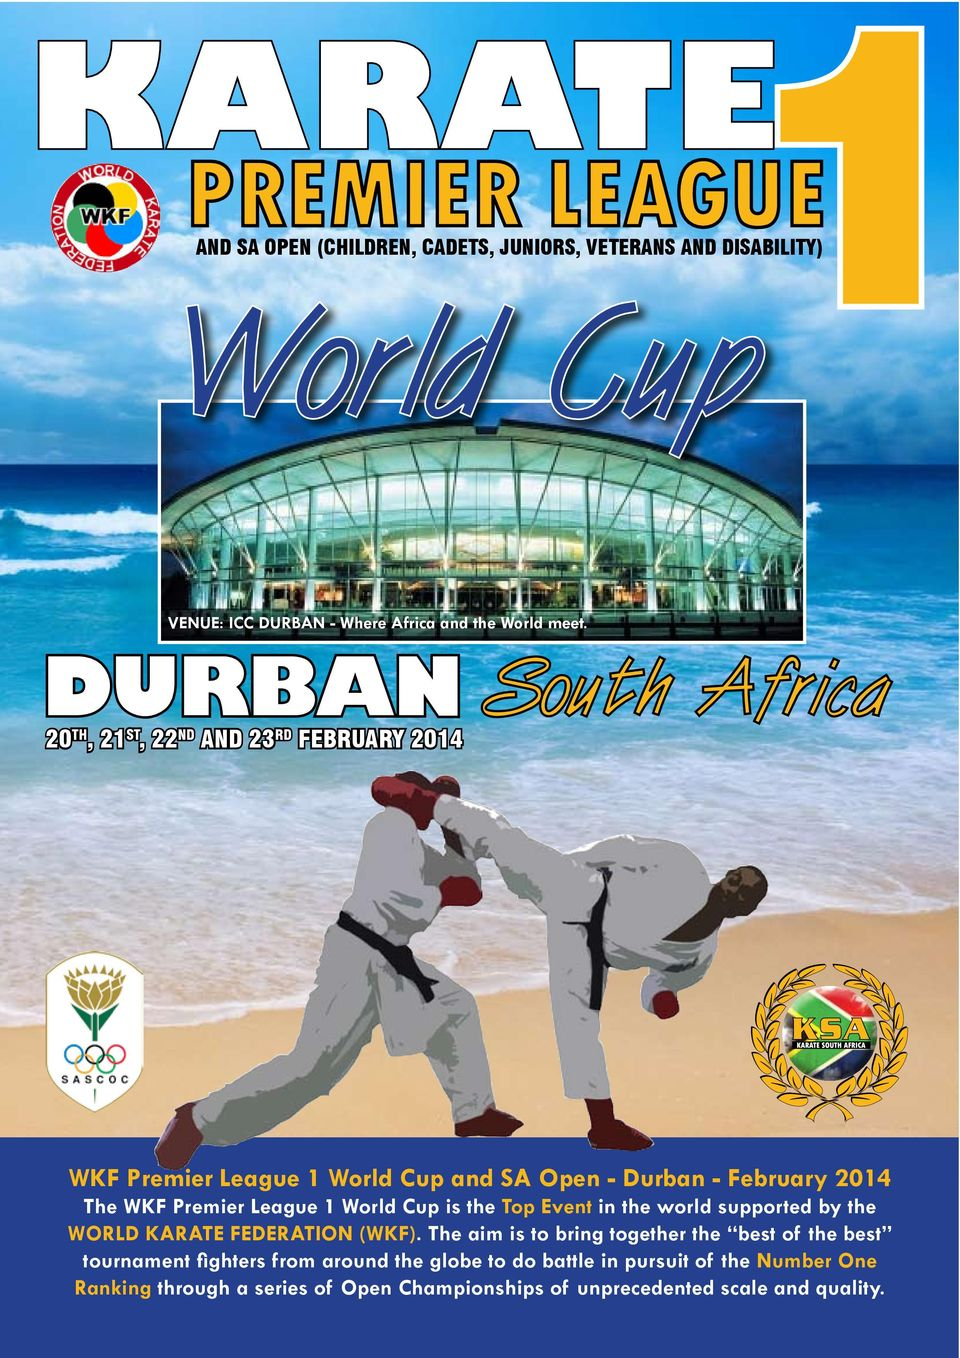 World Cup is the Top Event in the world supported by the World Karate Federation (WKF).